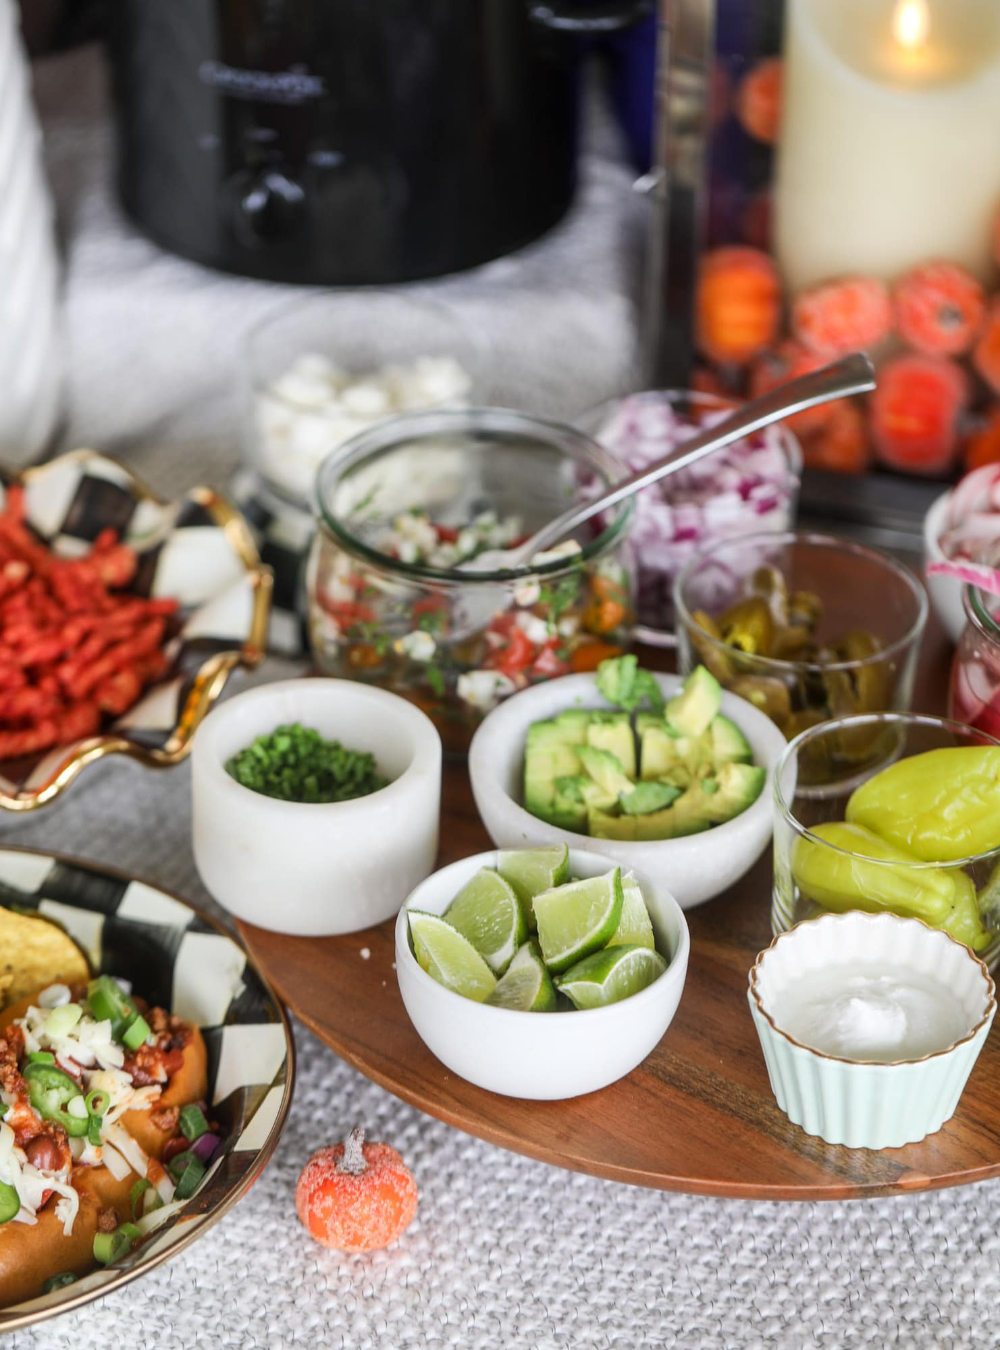 How To Set Up a Chili Bar - The Best Way to Set Up a Chili Bar #chilibar